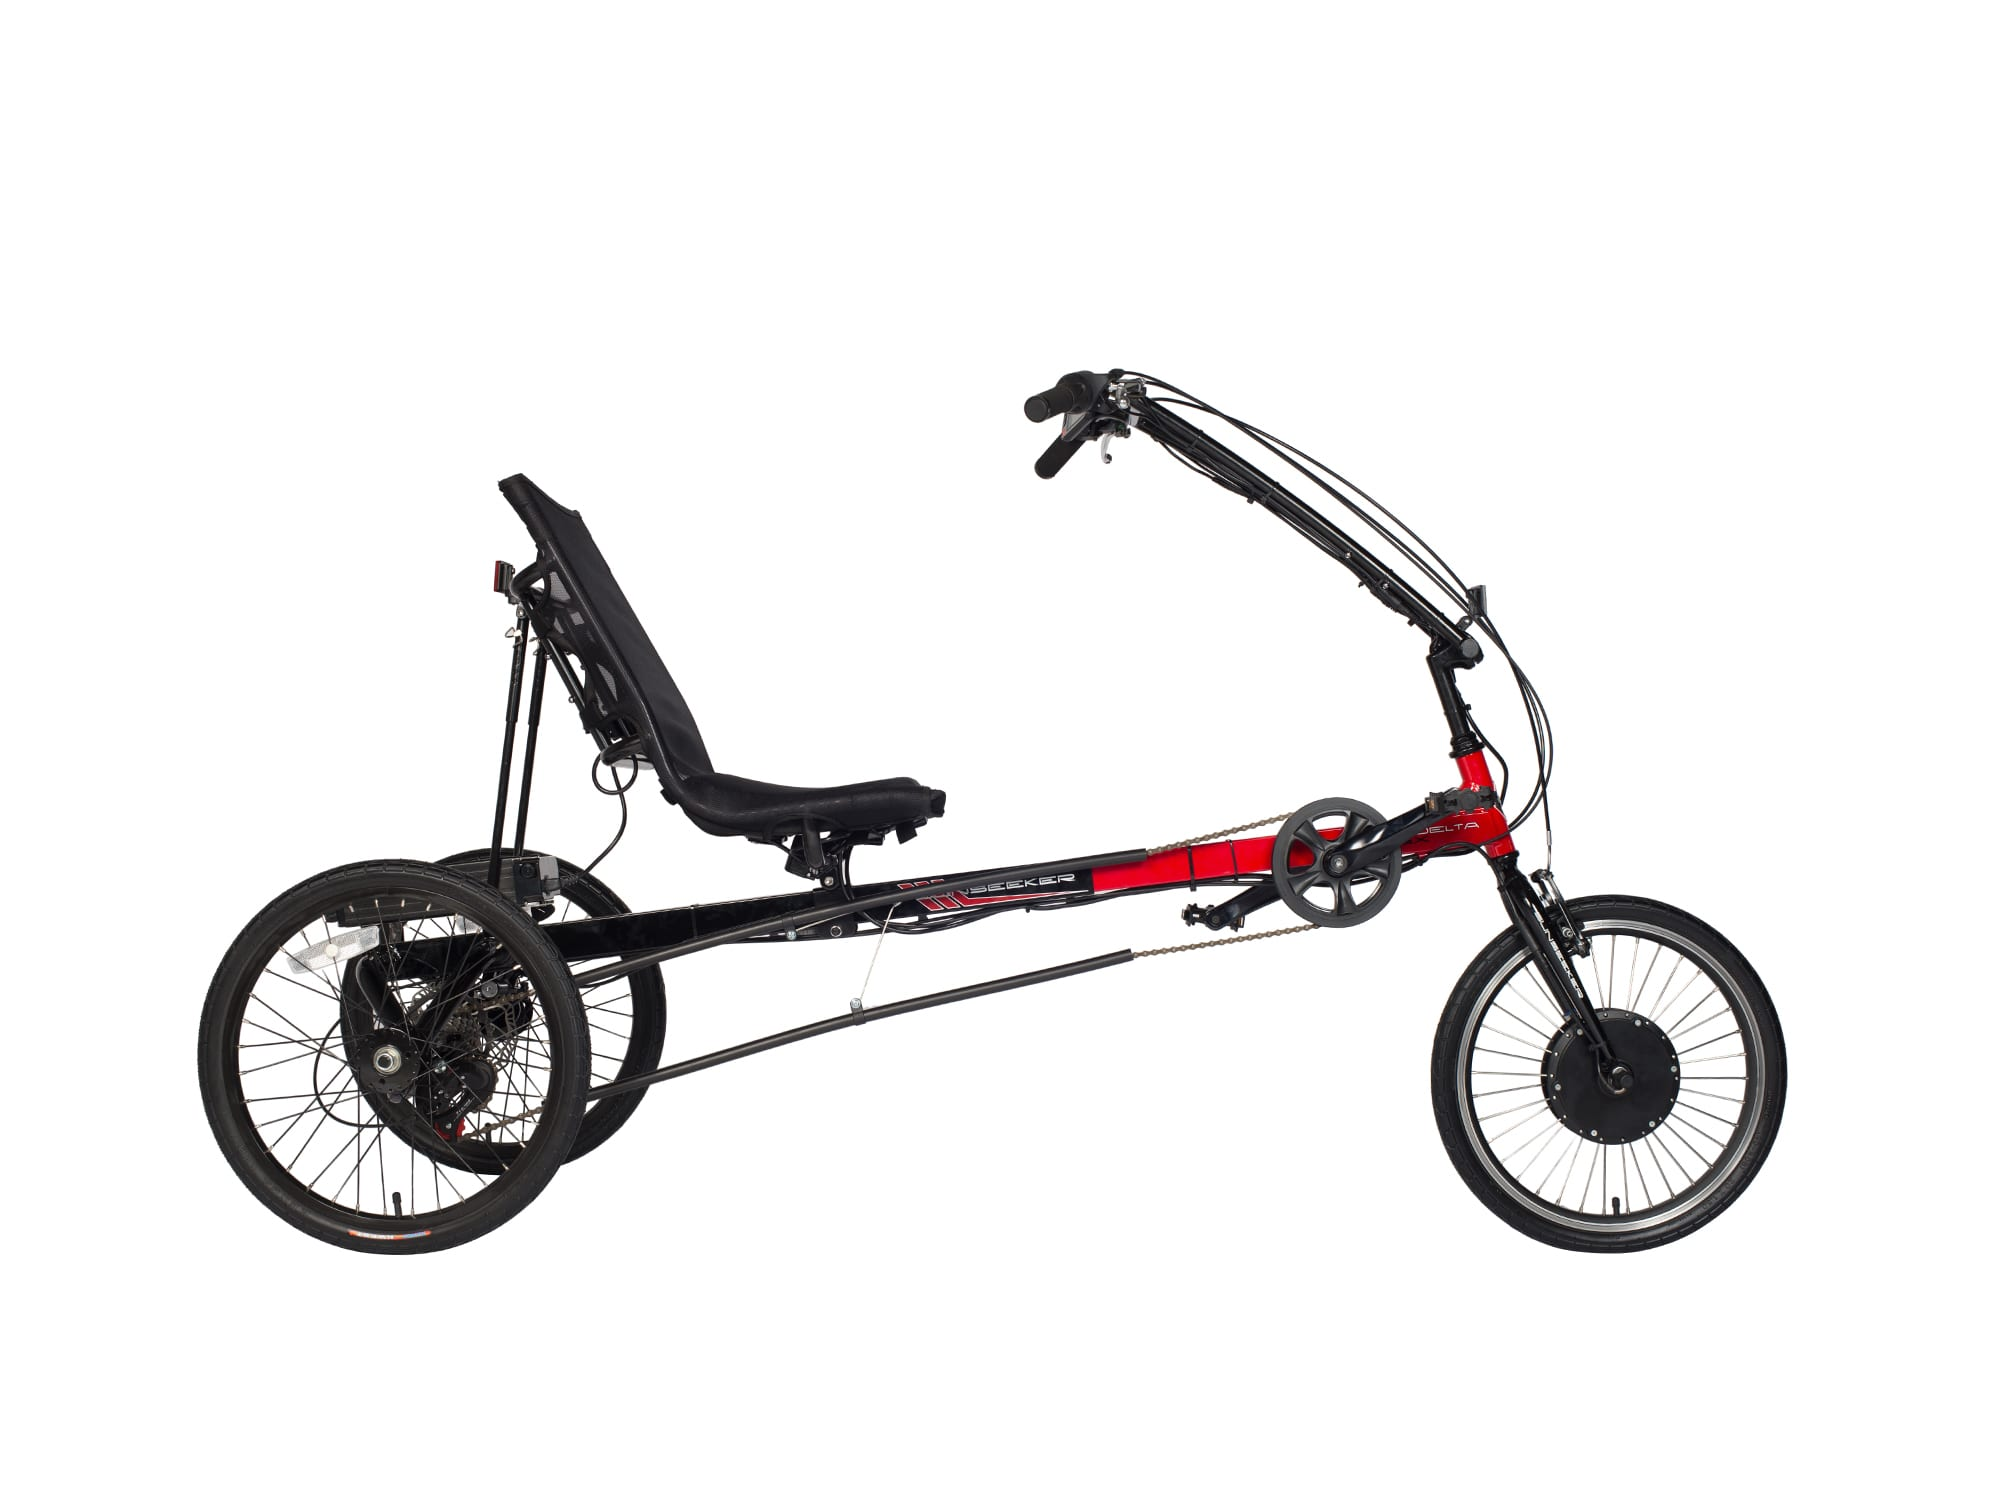 Electric Bike Technologies Electric Eco Delta Trike Review